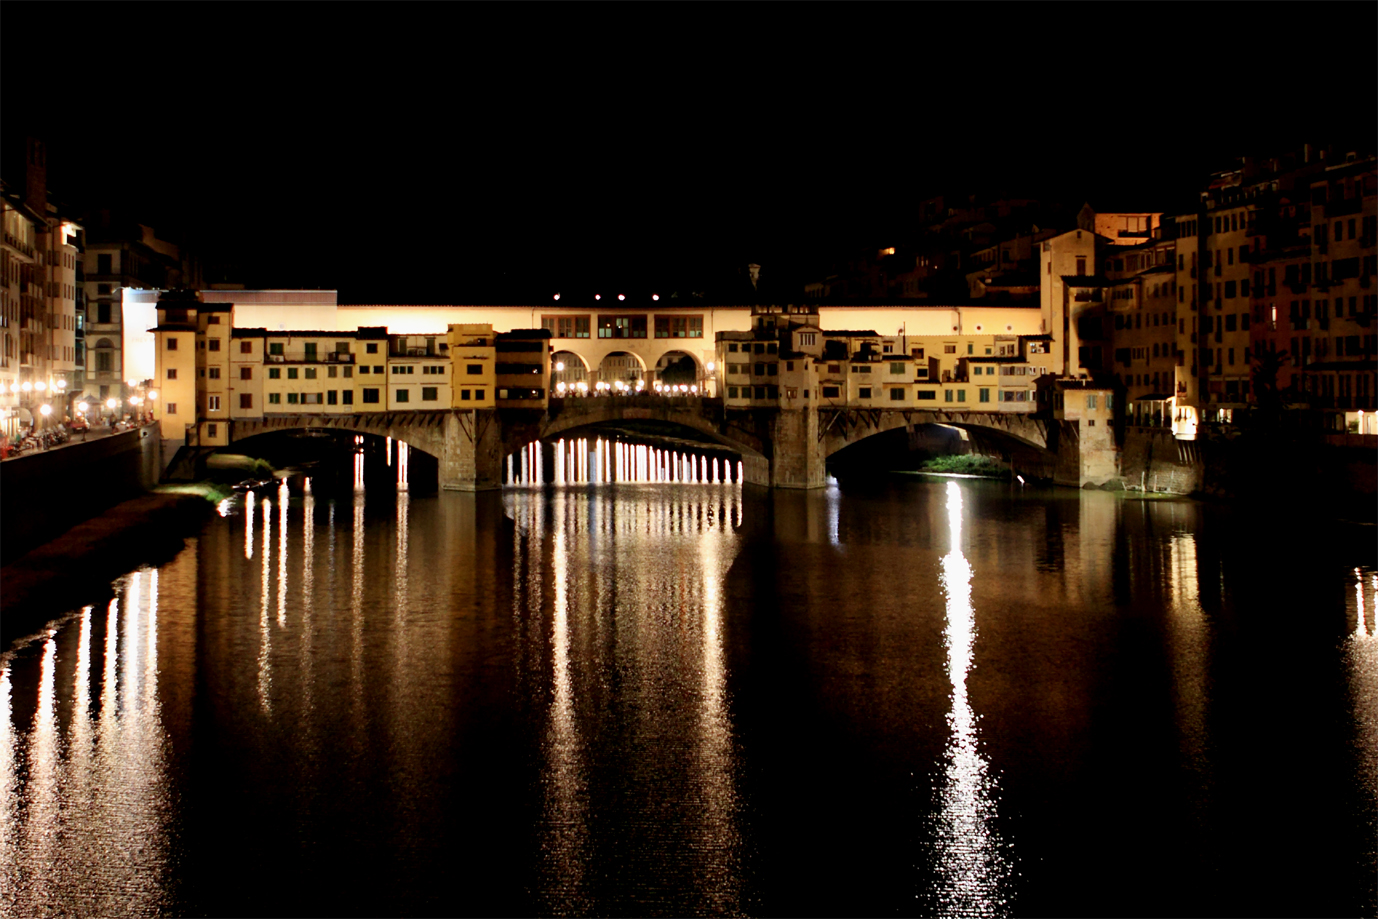 That beautiful renaissance glow. Florence at night ...